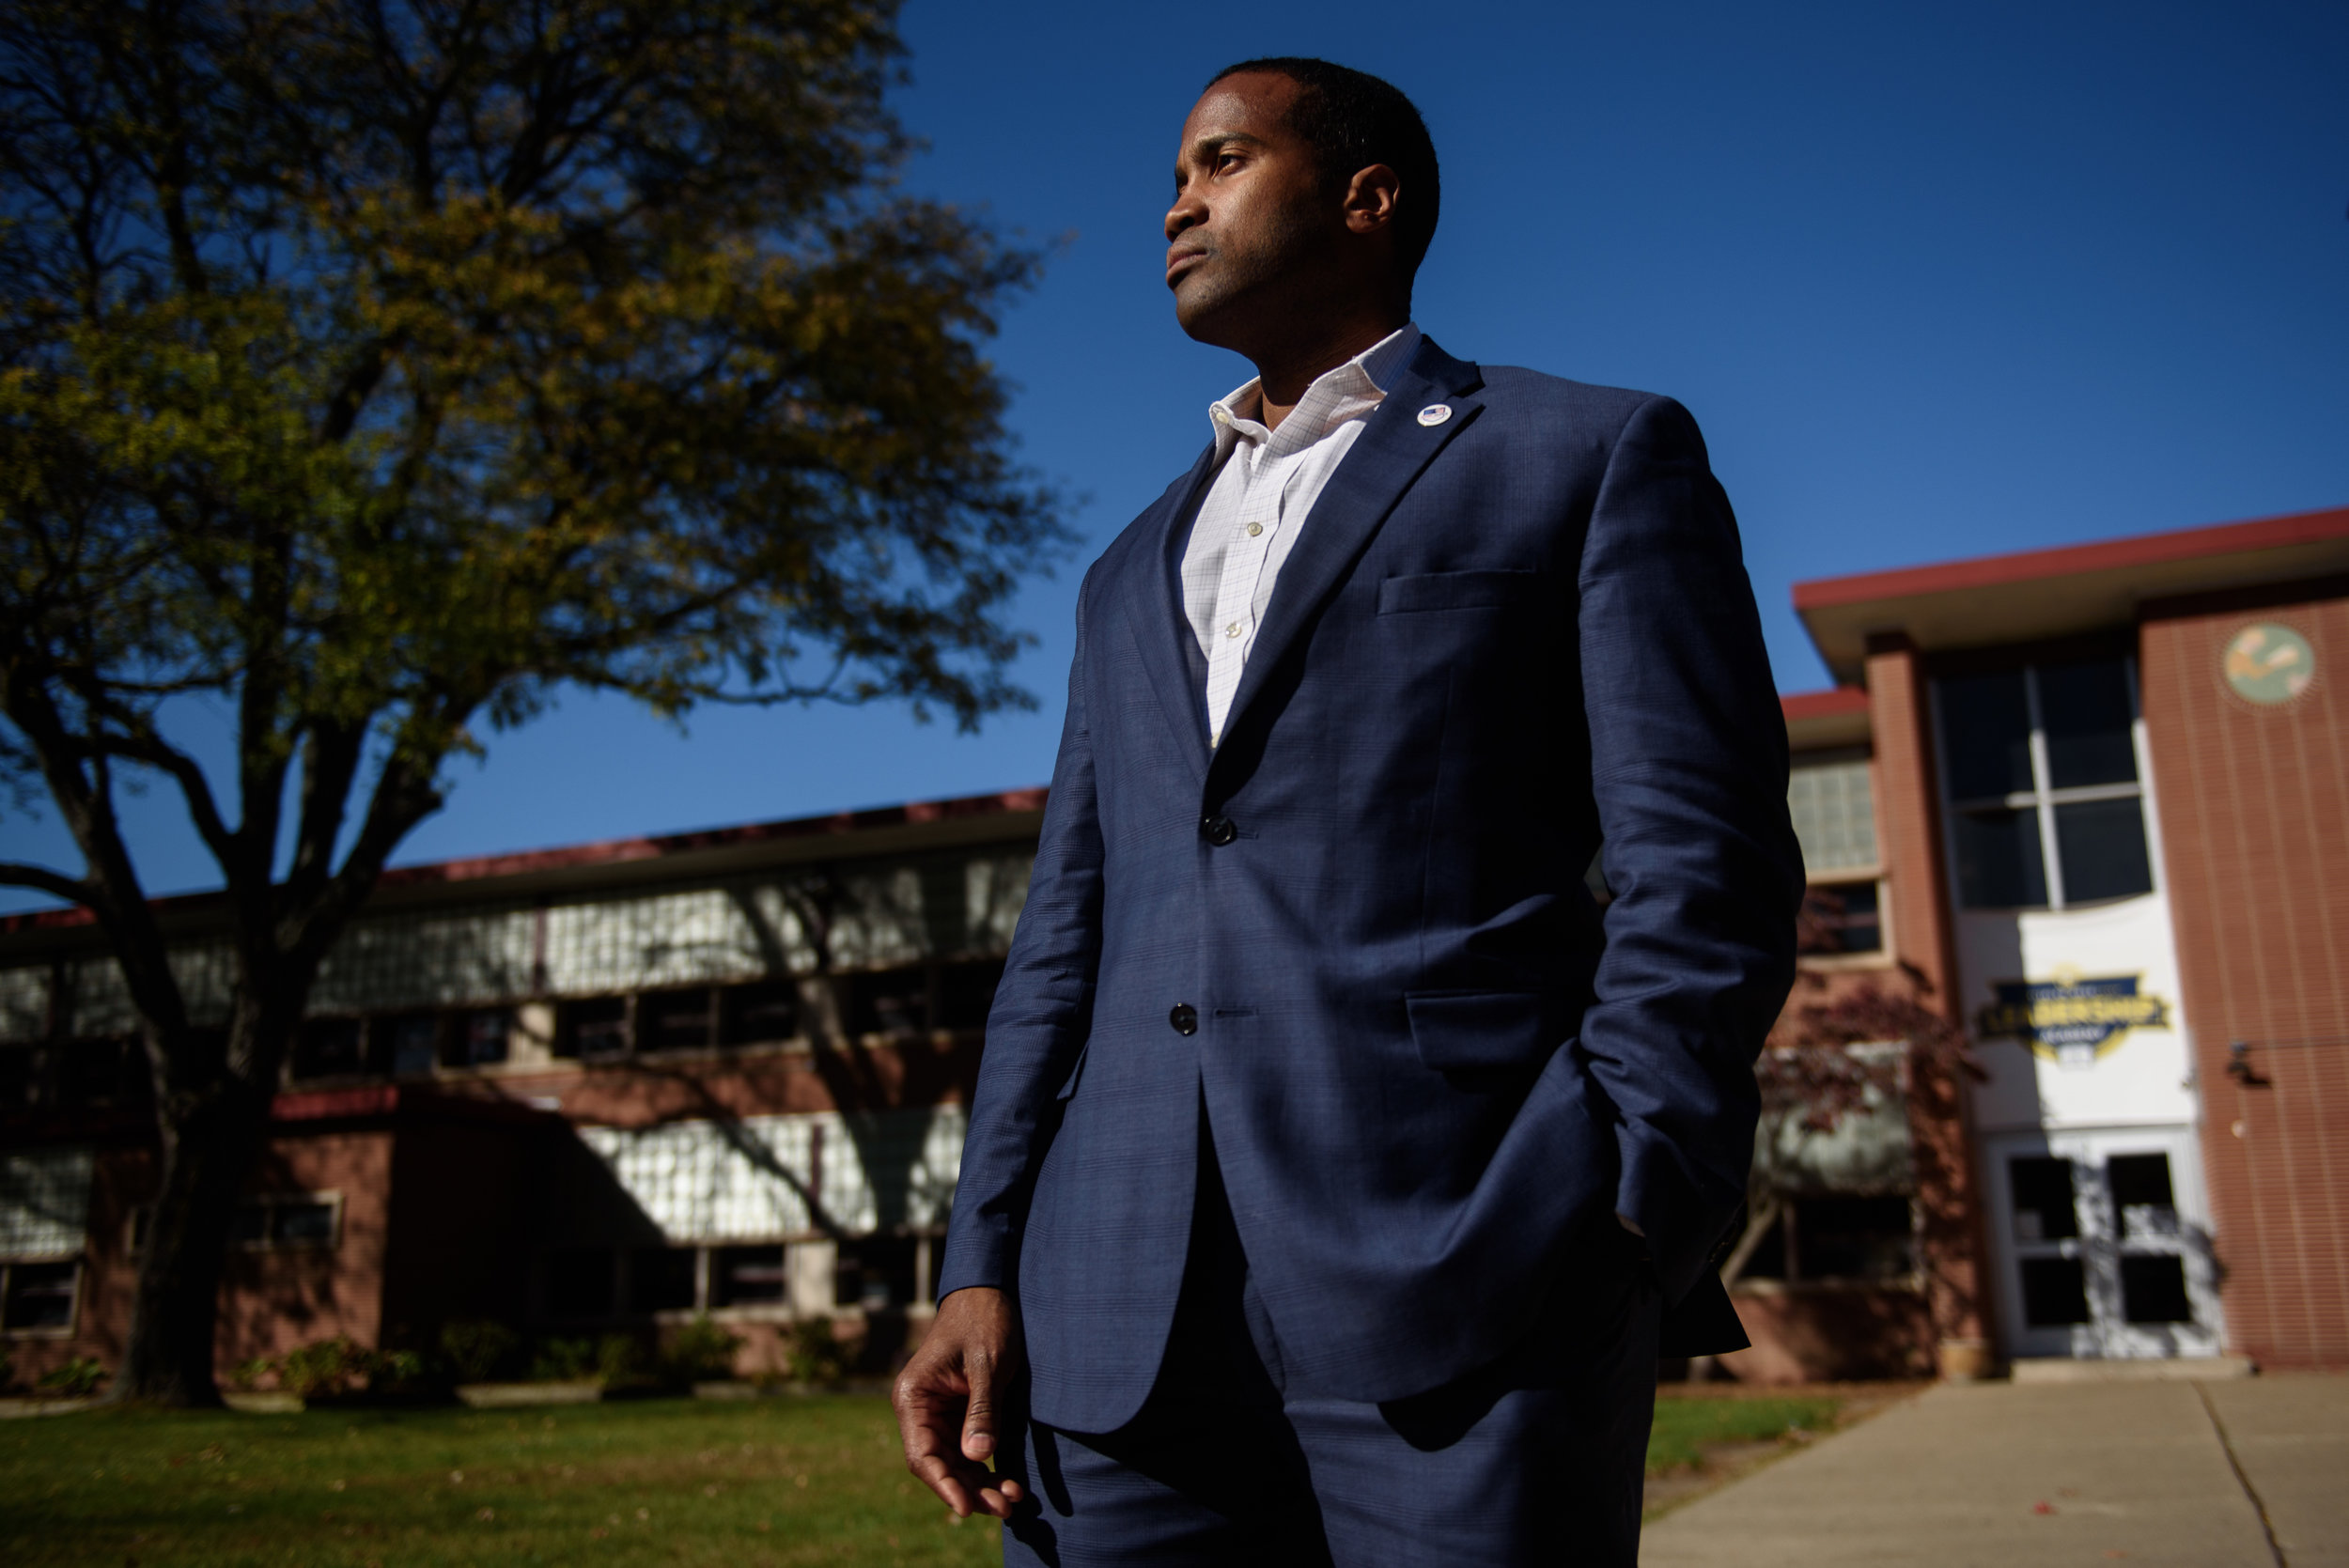 Detroit businessman and Iraq war veteran, John James, a Republican candidate for U.S. Senate in Michigan, poses for a portrait on Wednesday, Oct. 18, 2017 in Detroit, Mich.